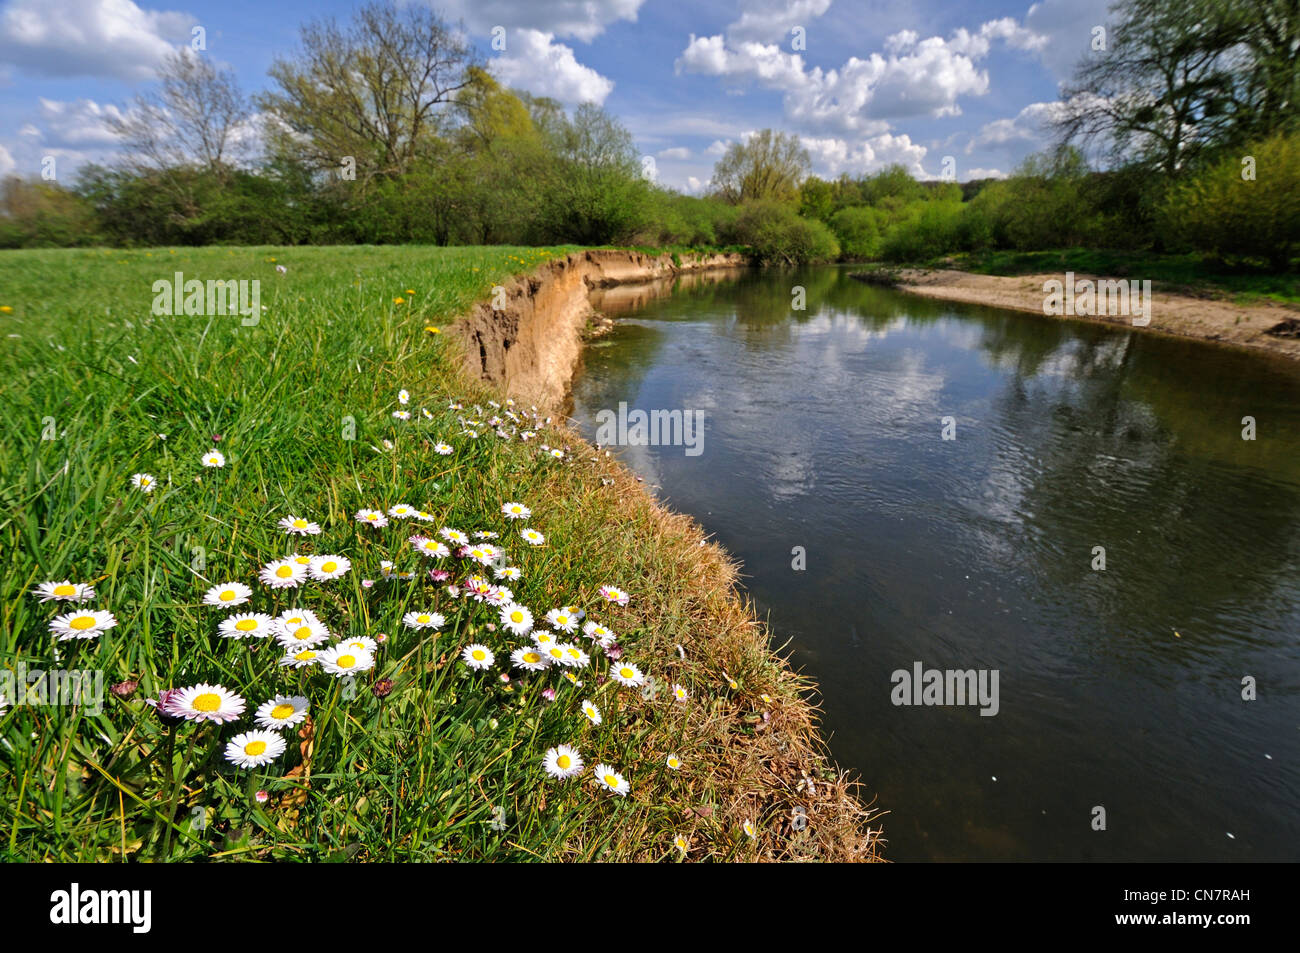 France, Doubs, valley of the Allan, Allenjoie, daisies in the meadow on the riverbank - Stock Image